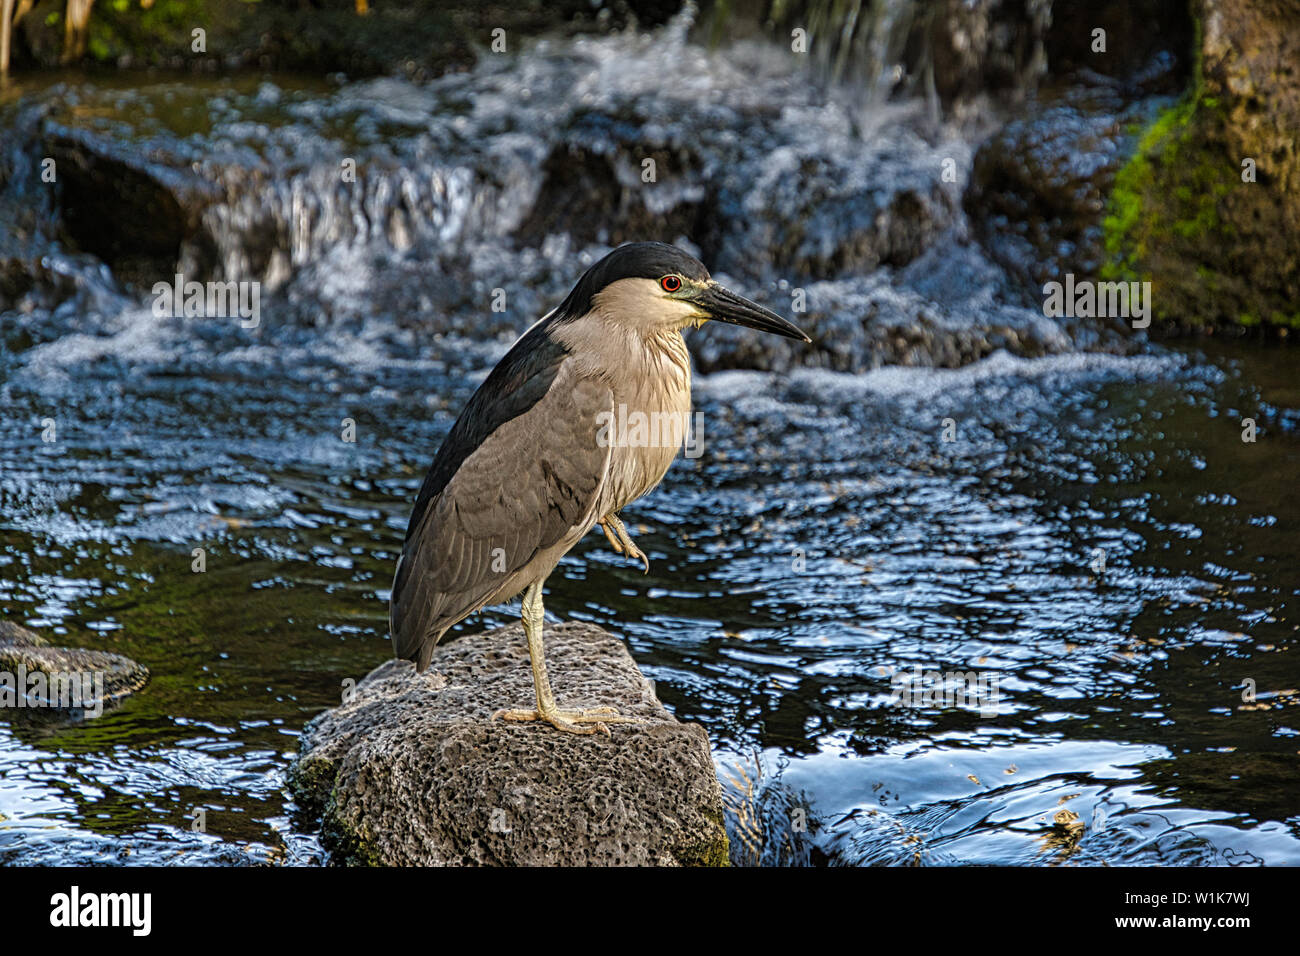 This little heron was perched by the Koi pond at the Hilton Hawaiian Village in Honolulu. - Stock Image